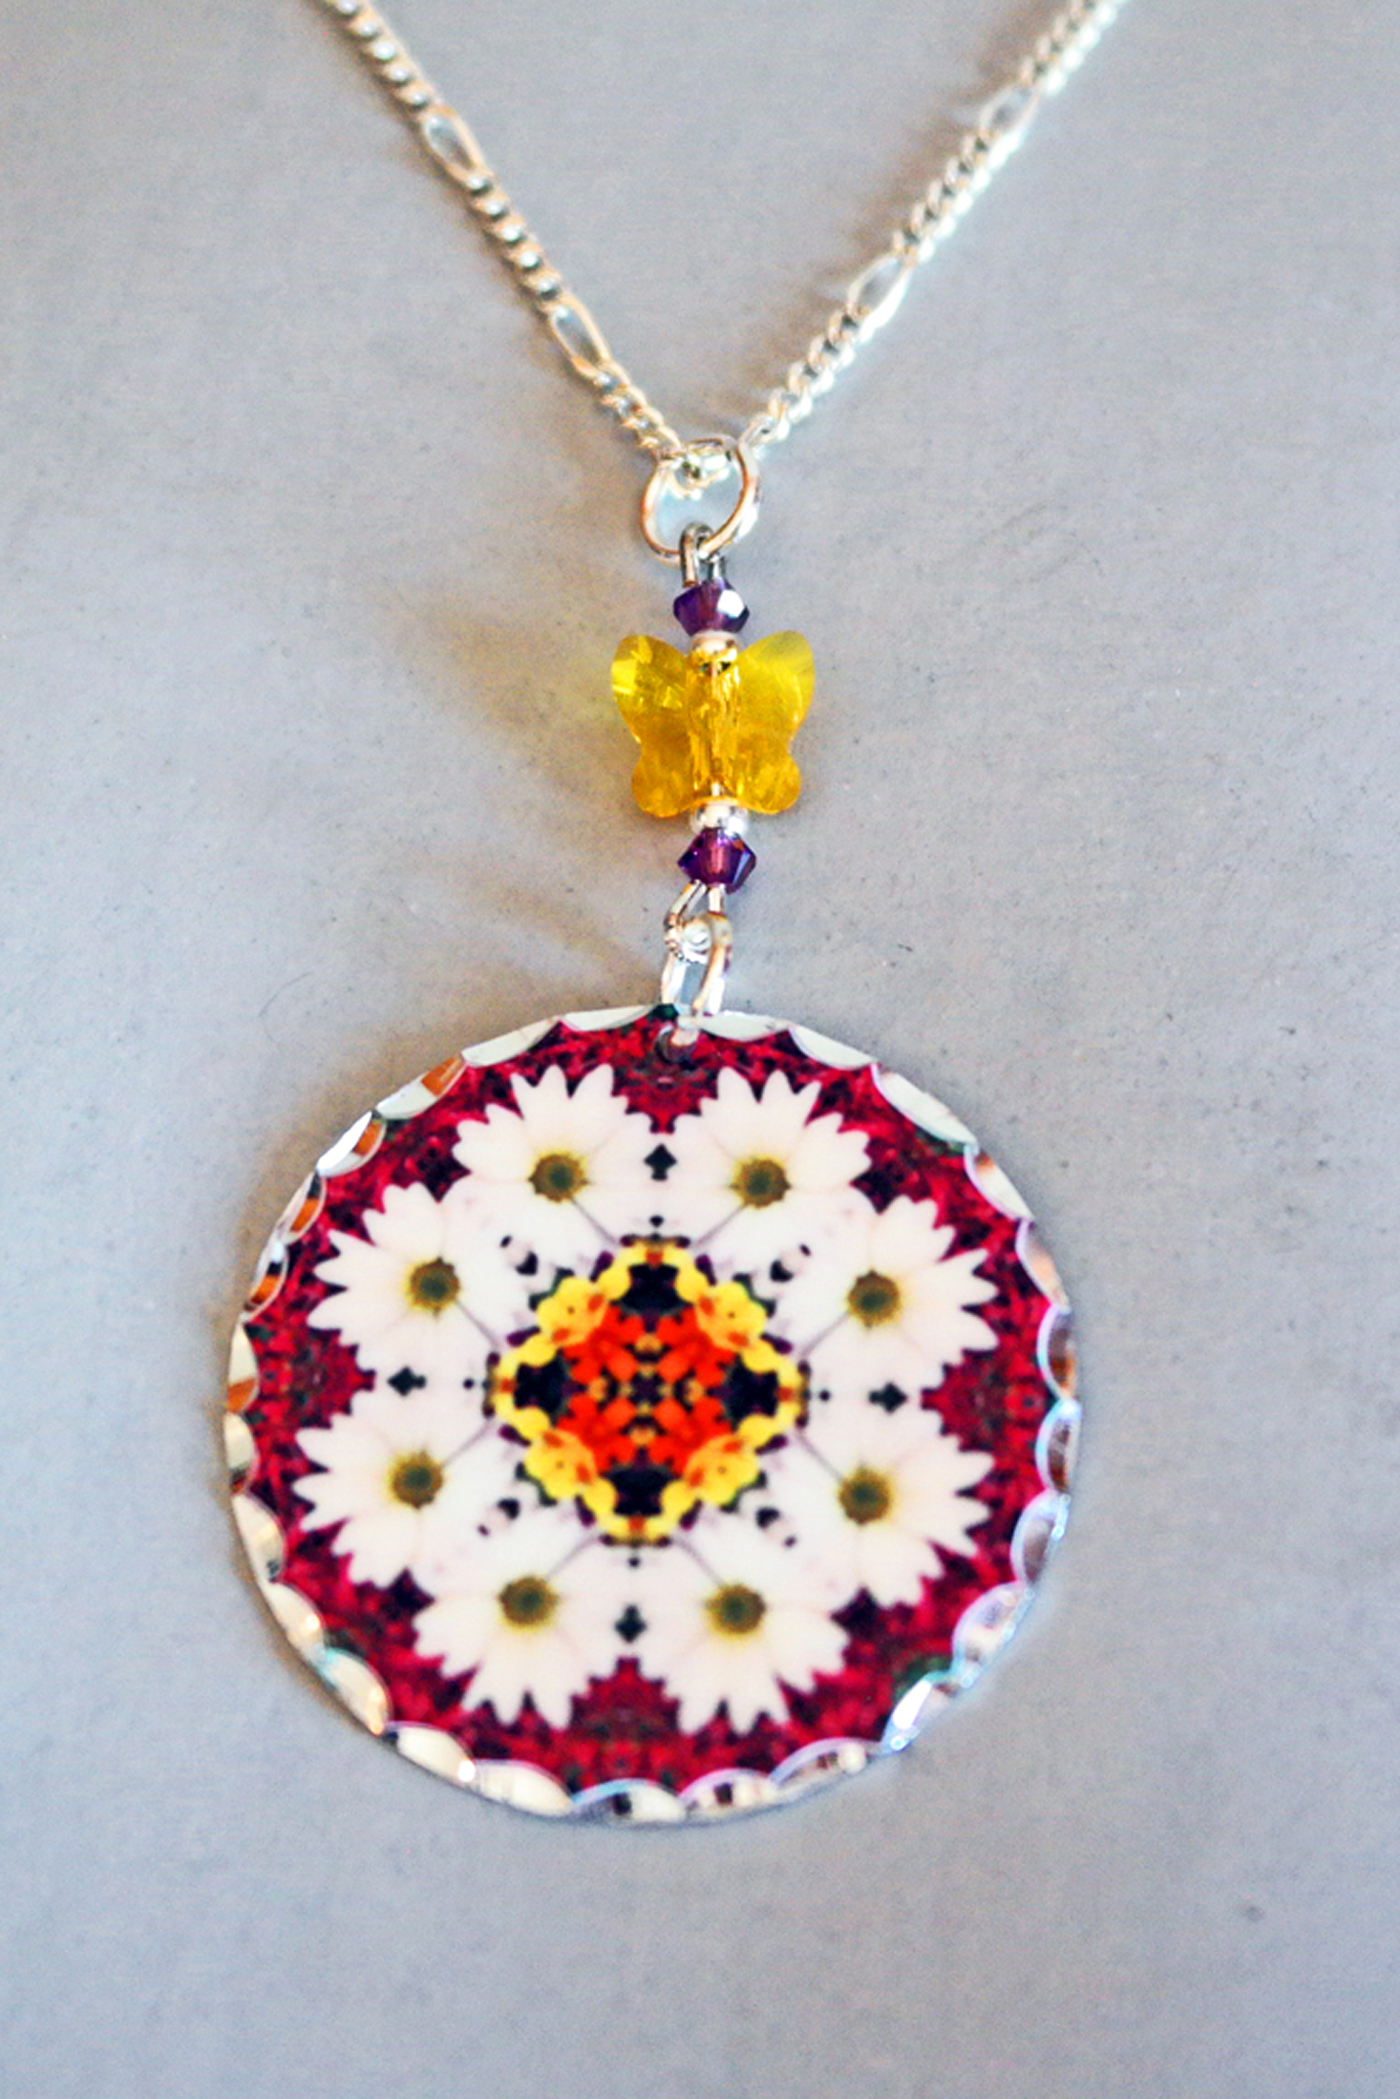 Daisy Charm Pendant Boho Chic Mandala New Age Sacred Geometry Hippie Kaleidoscopic Reflections Of A Virtuous Love